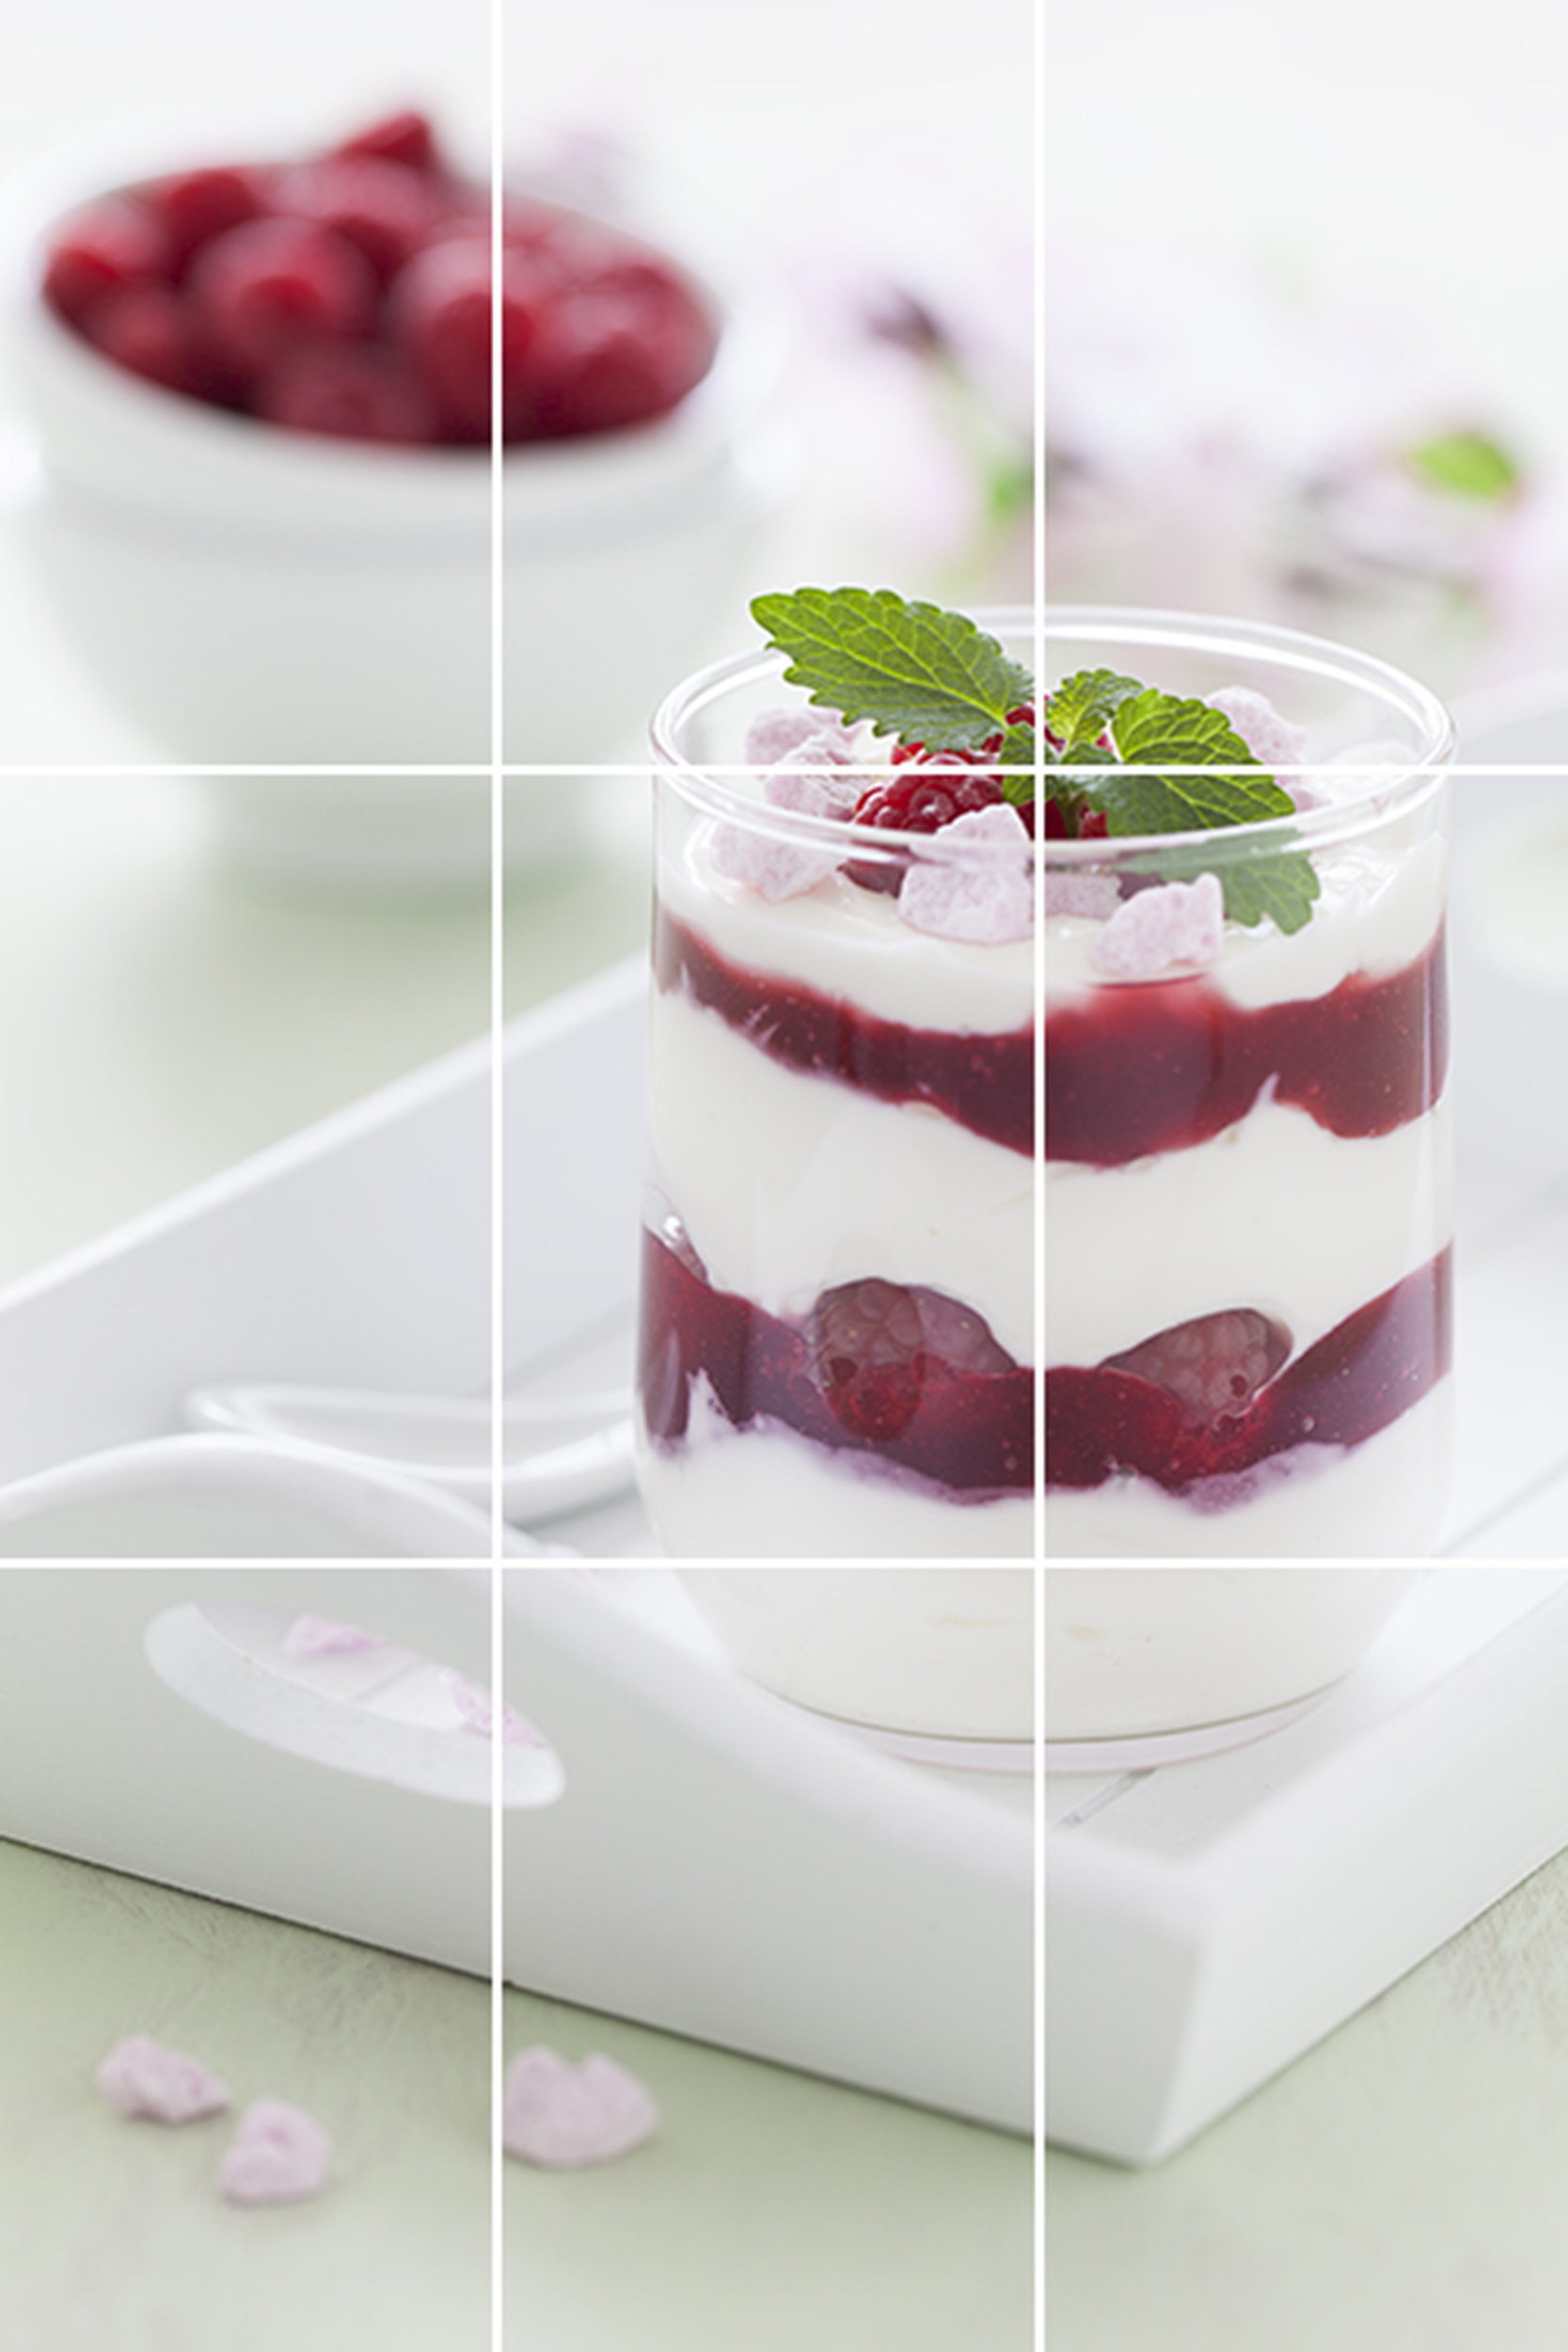 How To Position Food Photography Subjects